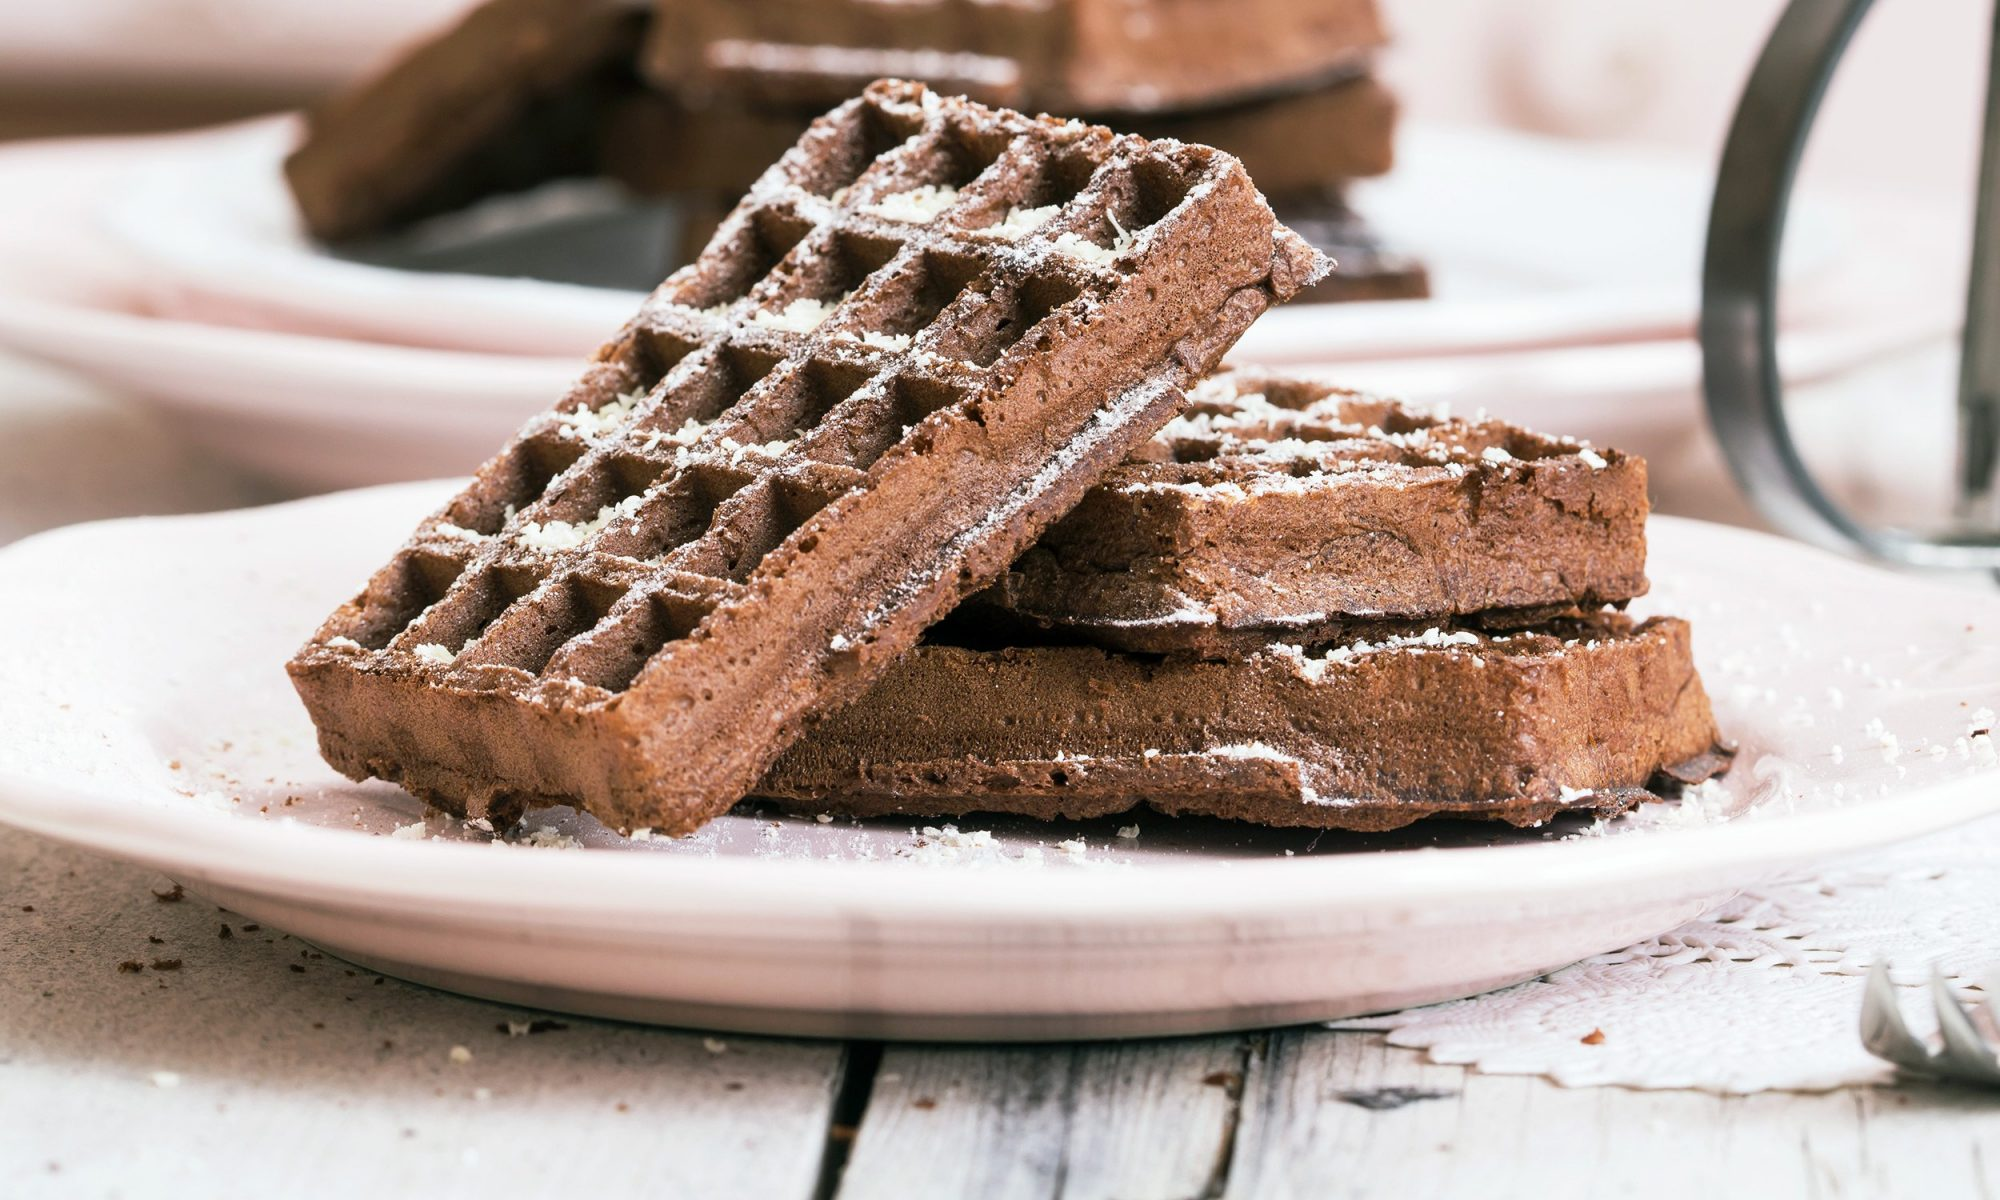 EC: Yes, You Can Use Brownie Mix to Make Waffles